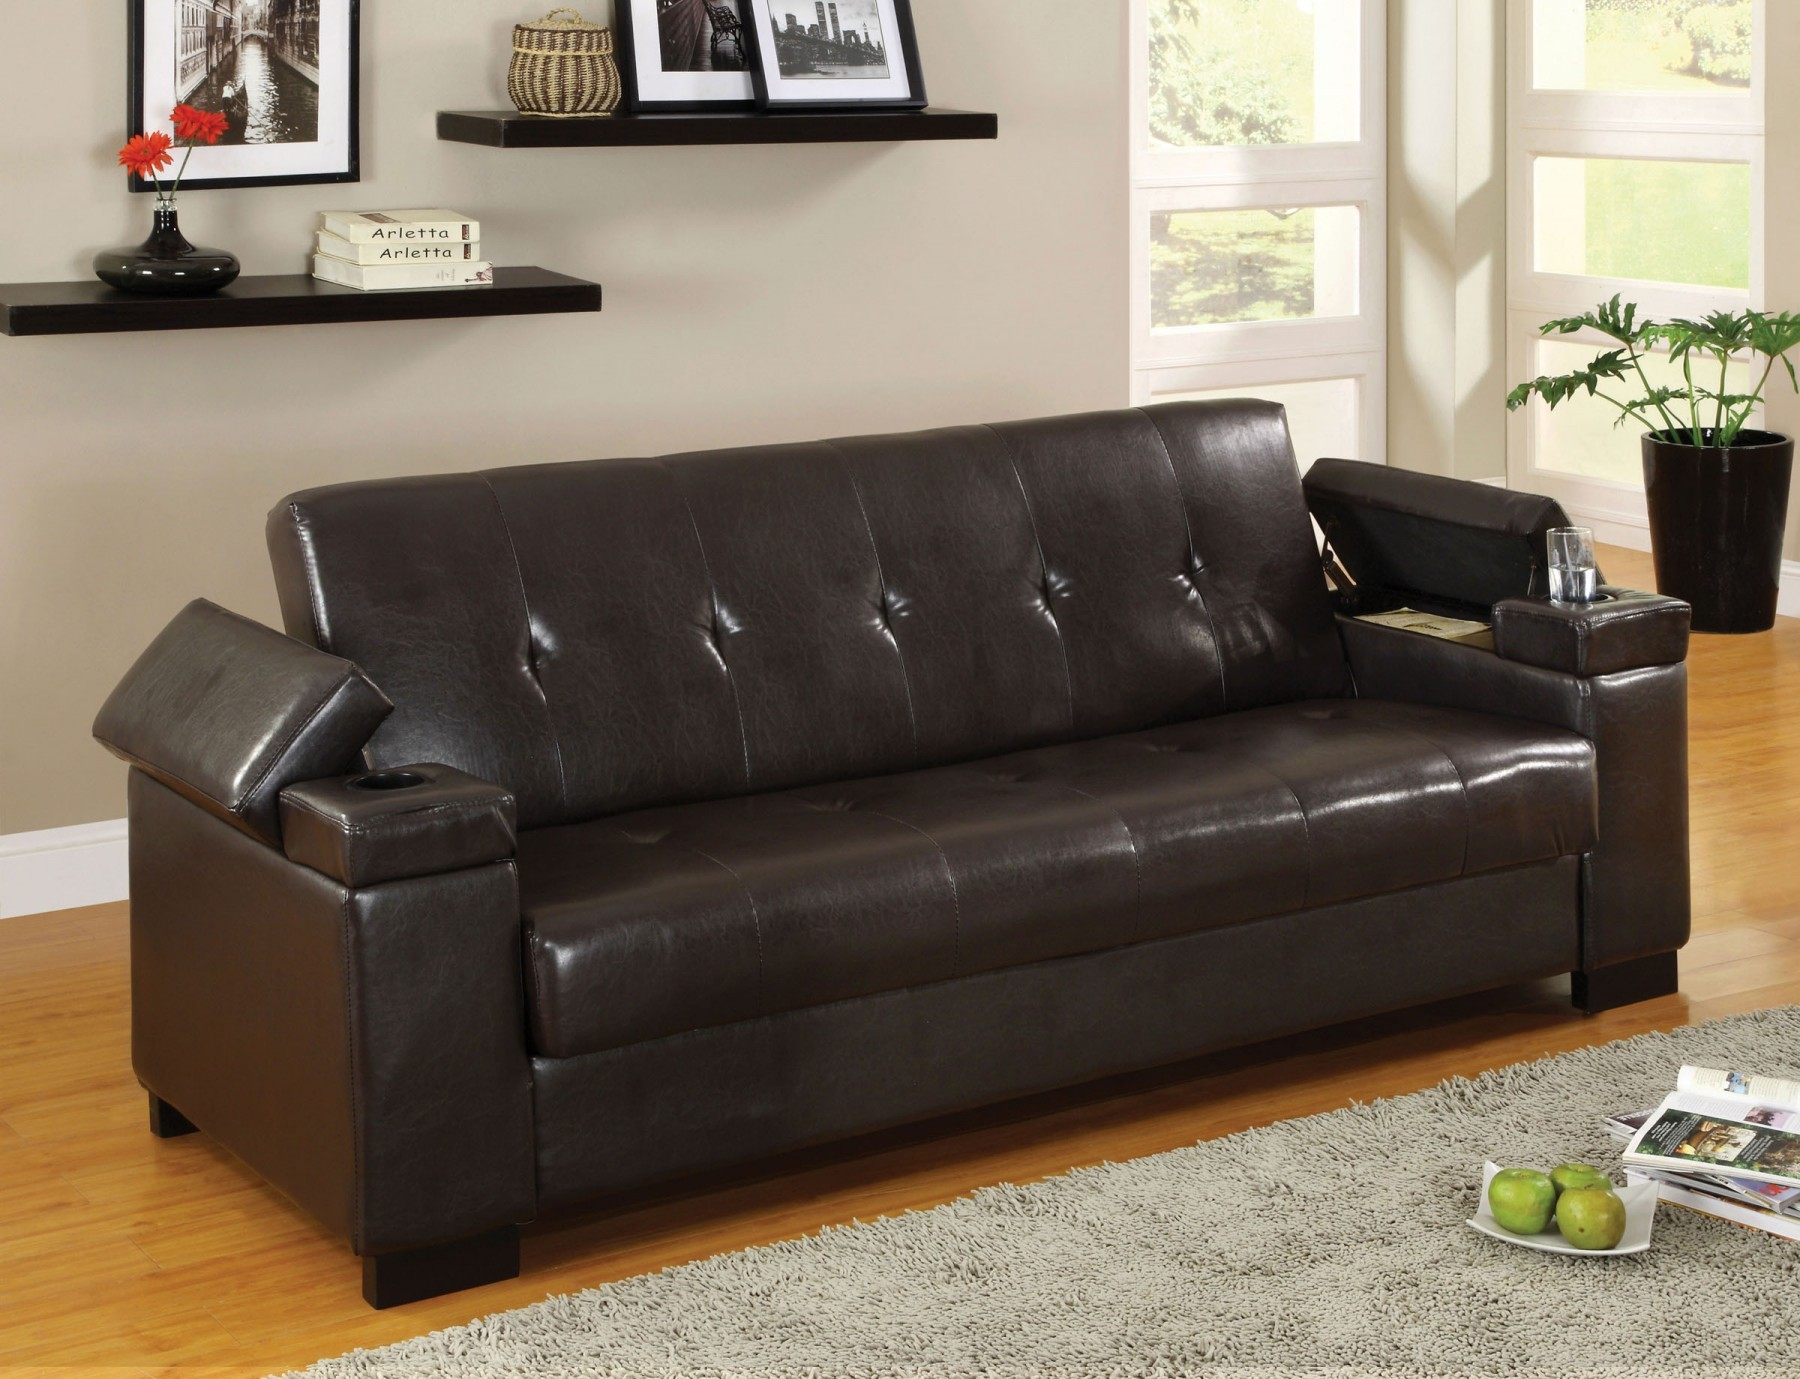 sofa armrest drink holder revamp old bed cup futon avenue greene julia